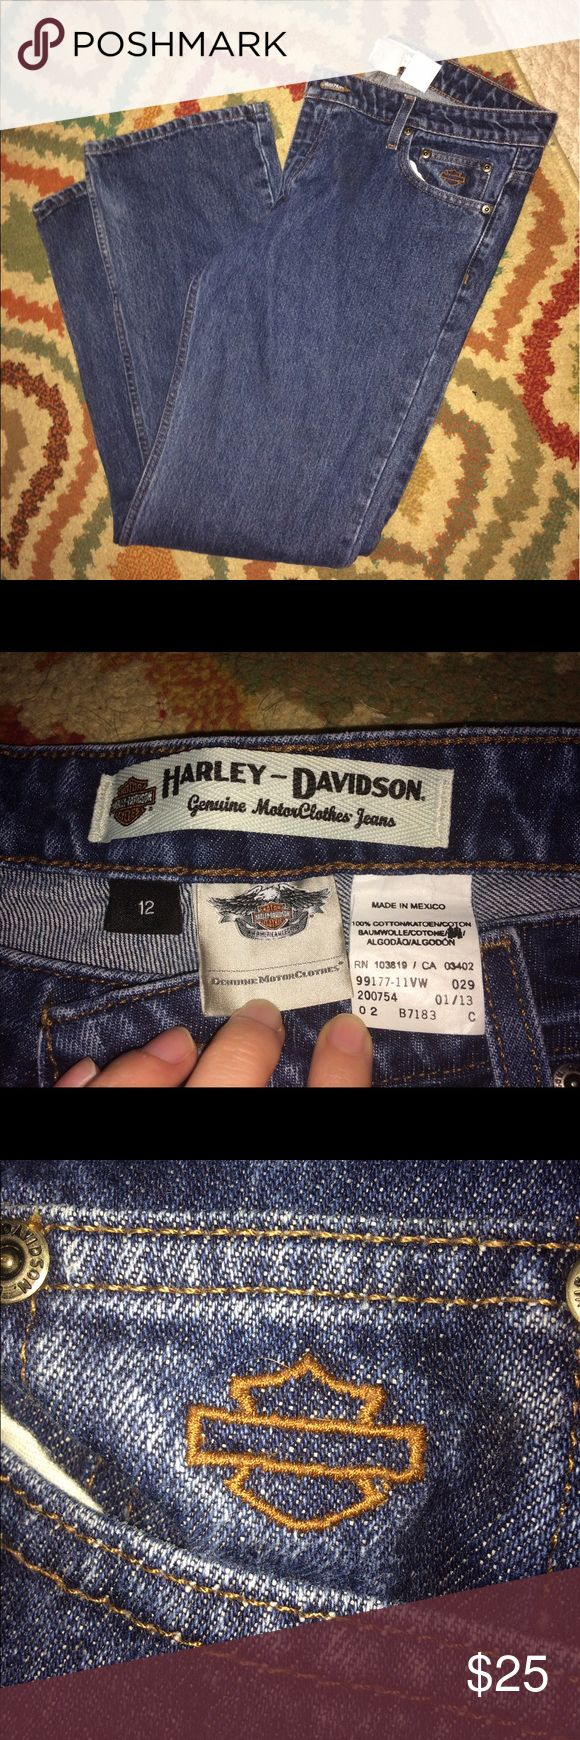 Harley-Davidson Jeans Authentic Harvey-Davidson jeans size 12. Never worn. Harley-Davidson Jeans